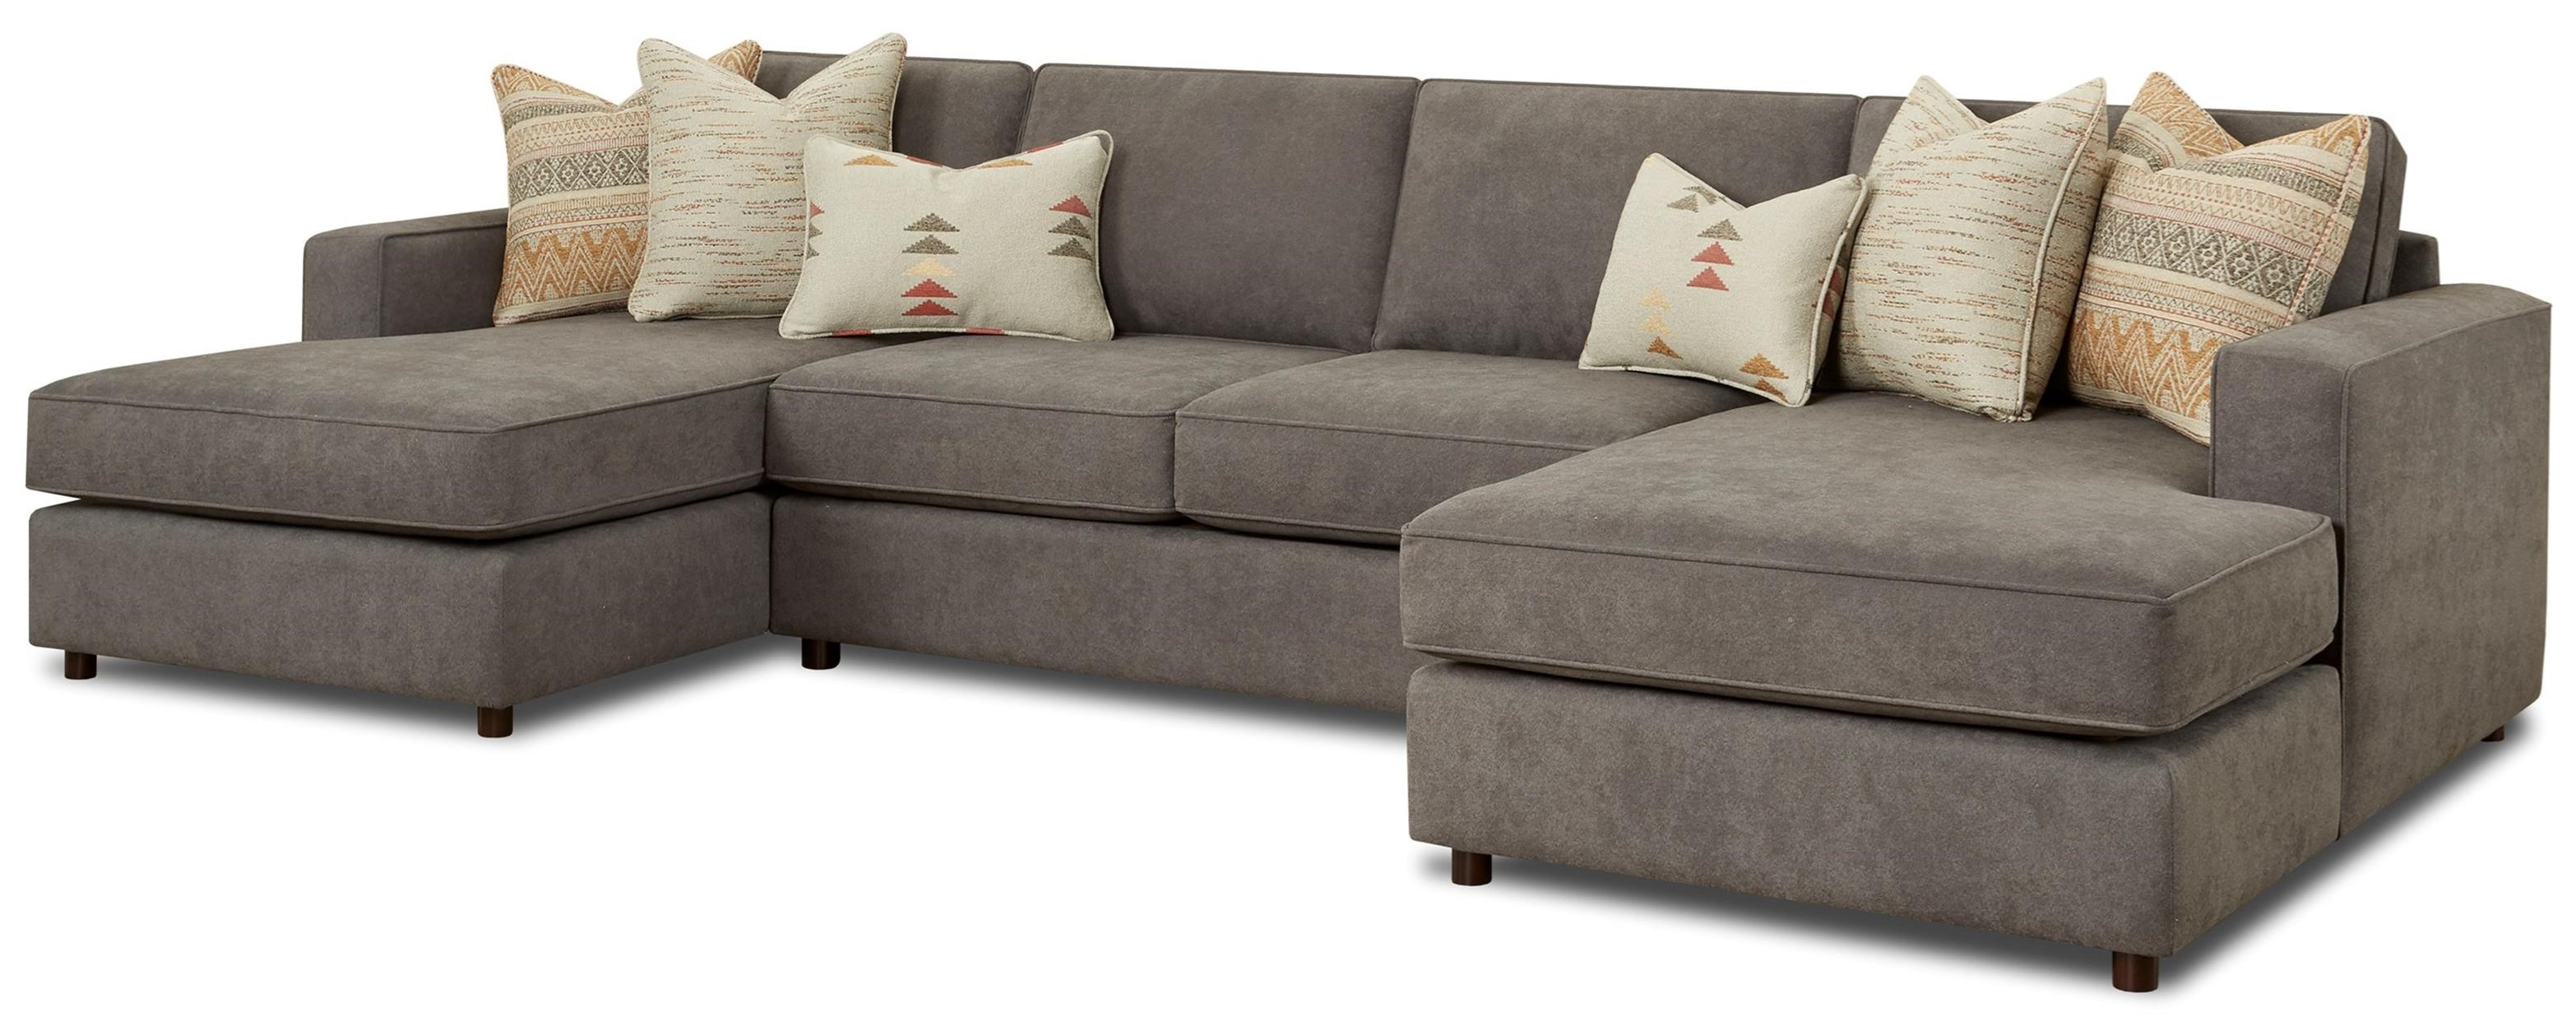 2061 3-Piece Dual Chaise Sectional by Fusion Furniture at Wilson's Furniture